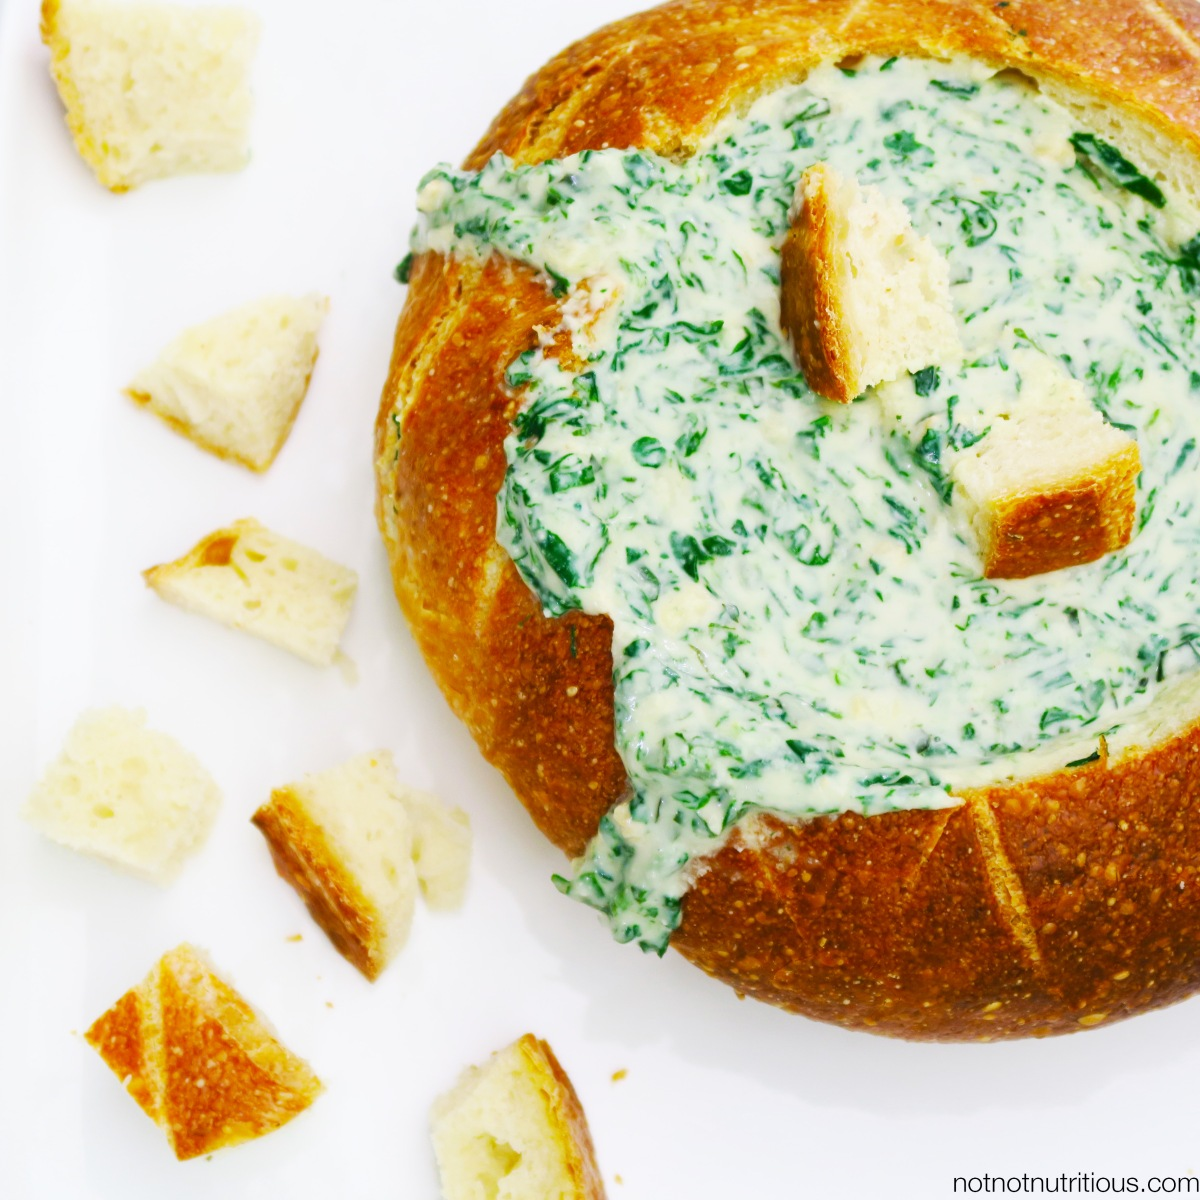 Lazy or Efficient? Either way, you'll love this Spinach Dip [Plant-based party food]